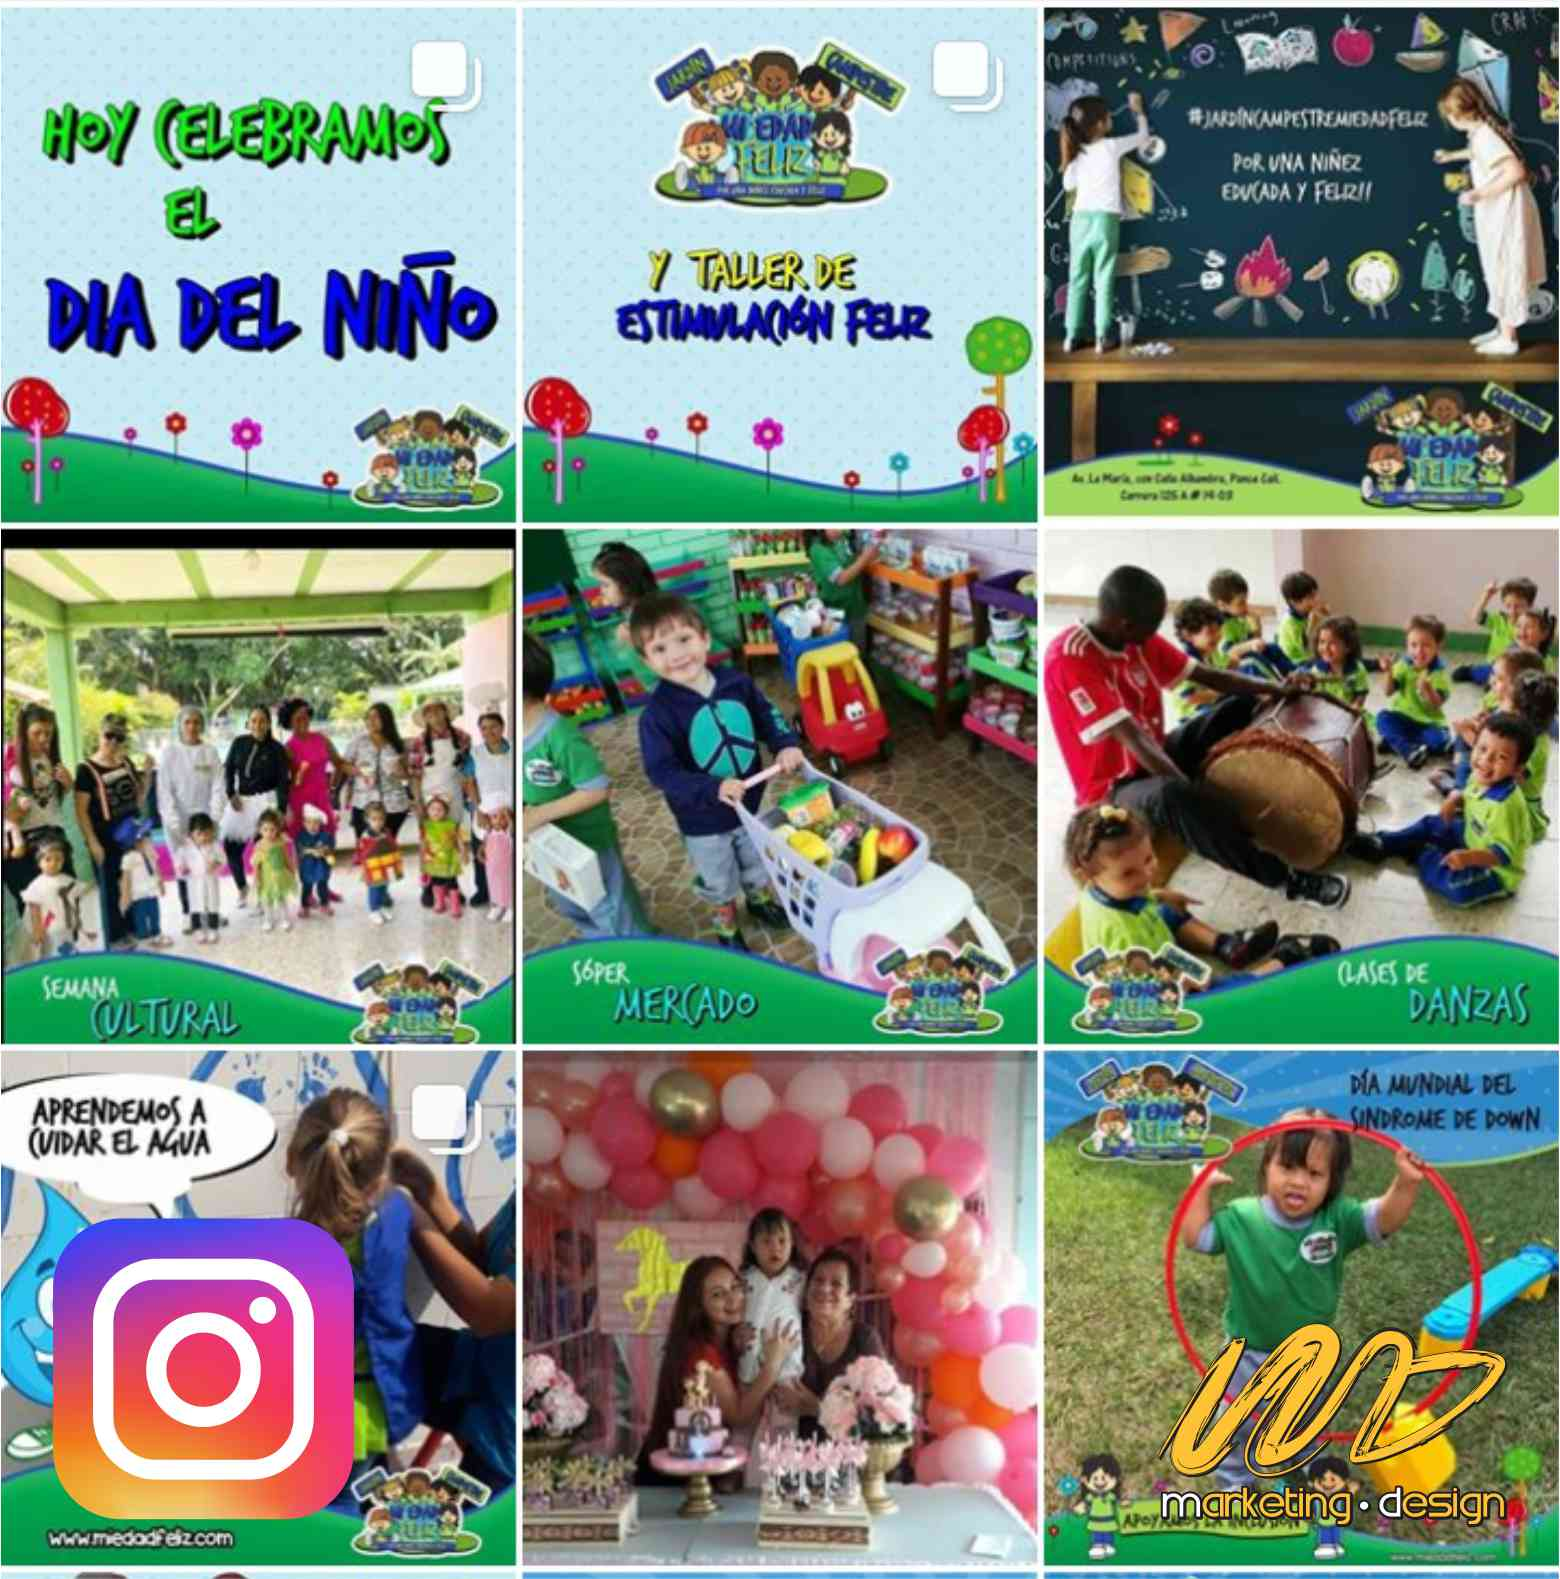 Clientes Instagram Marketing Design 1906